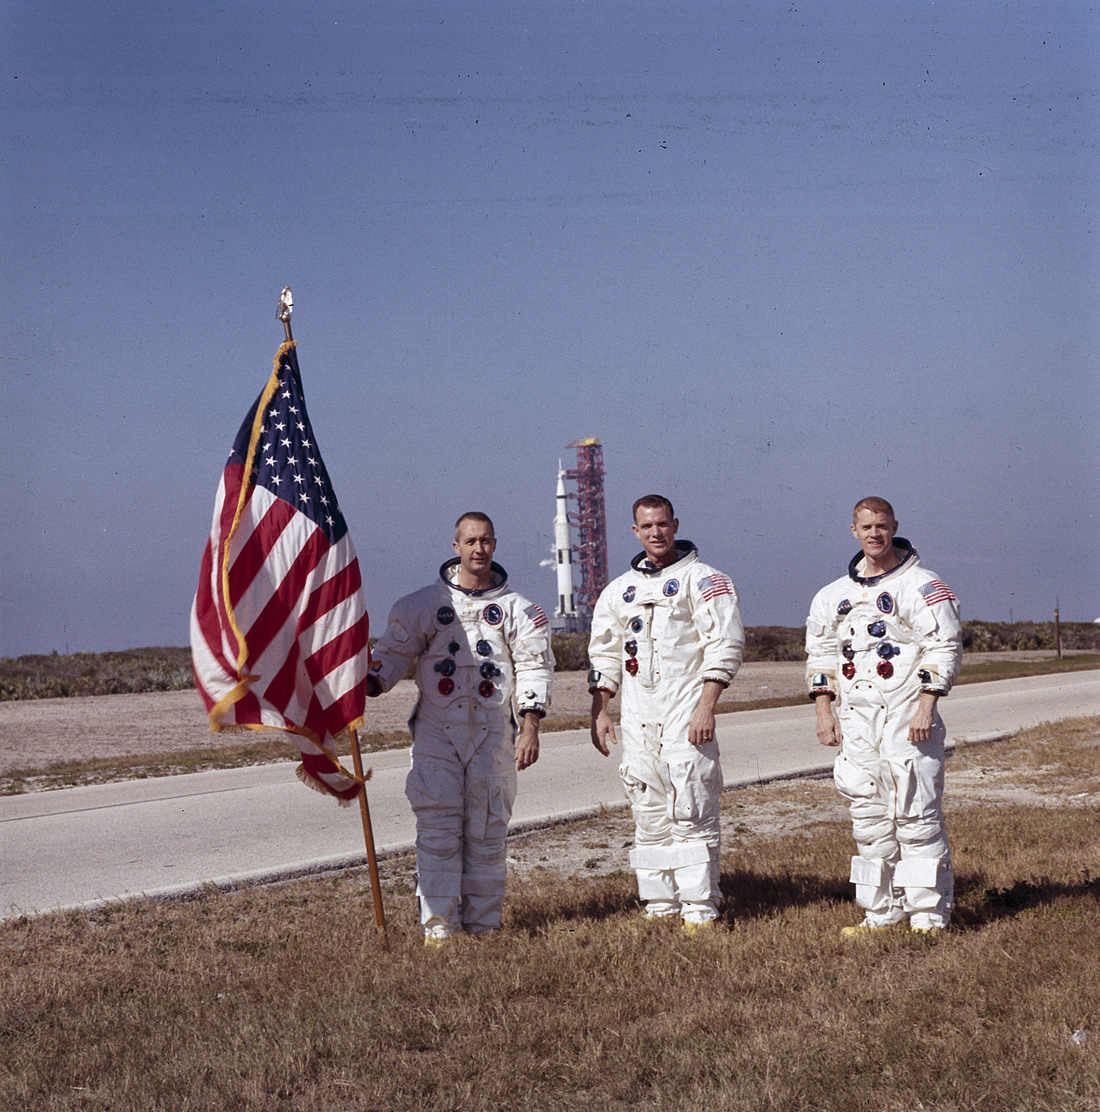 Three astronauts, one holding American flag, with Apollo 9 spacecraft in background